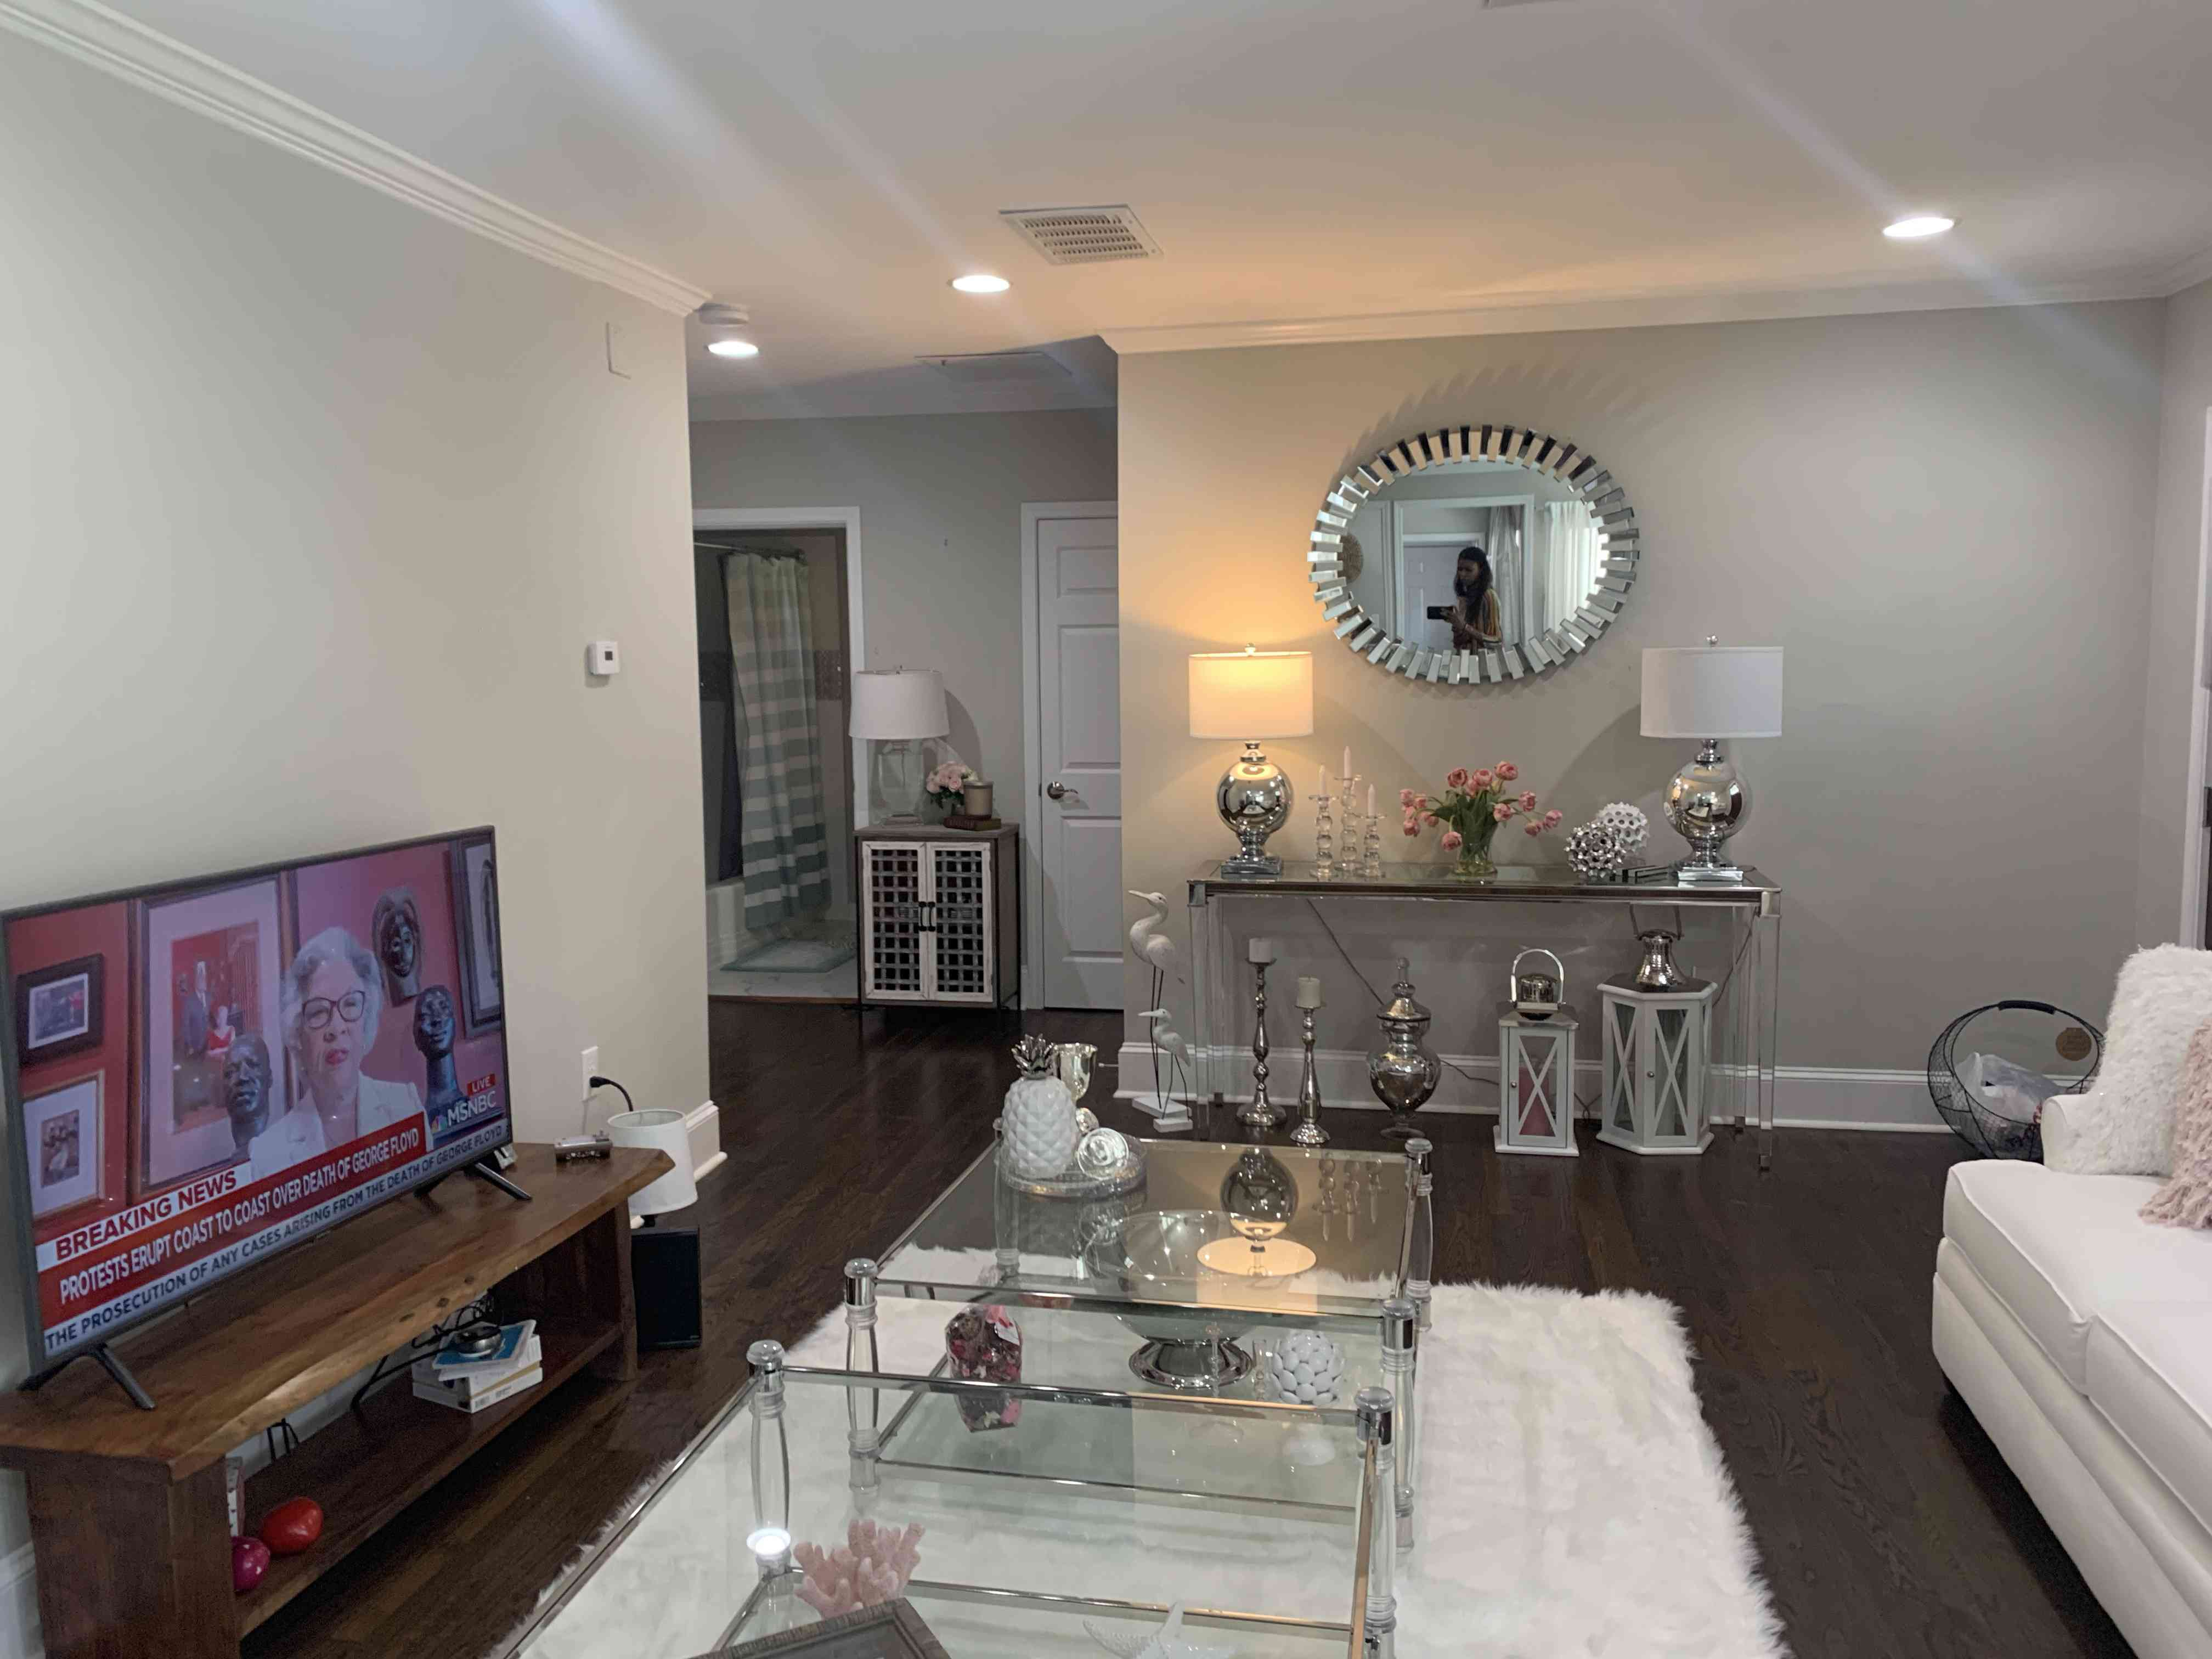 makeover of the week - interior design by S&S, living room before